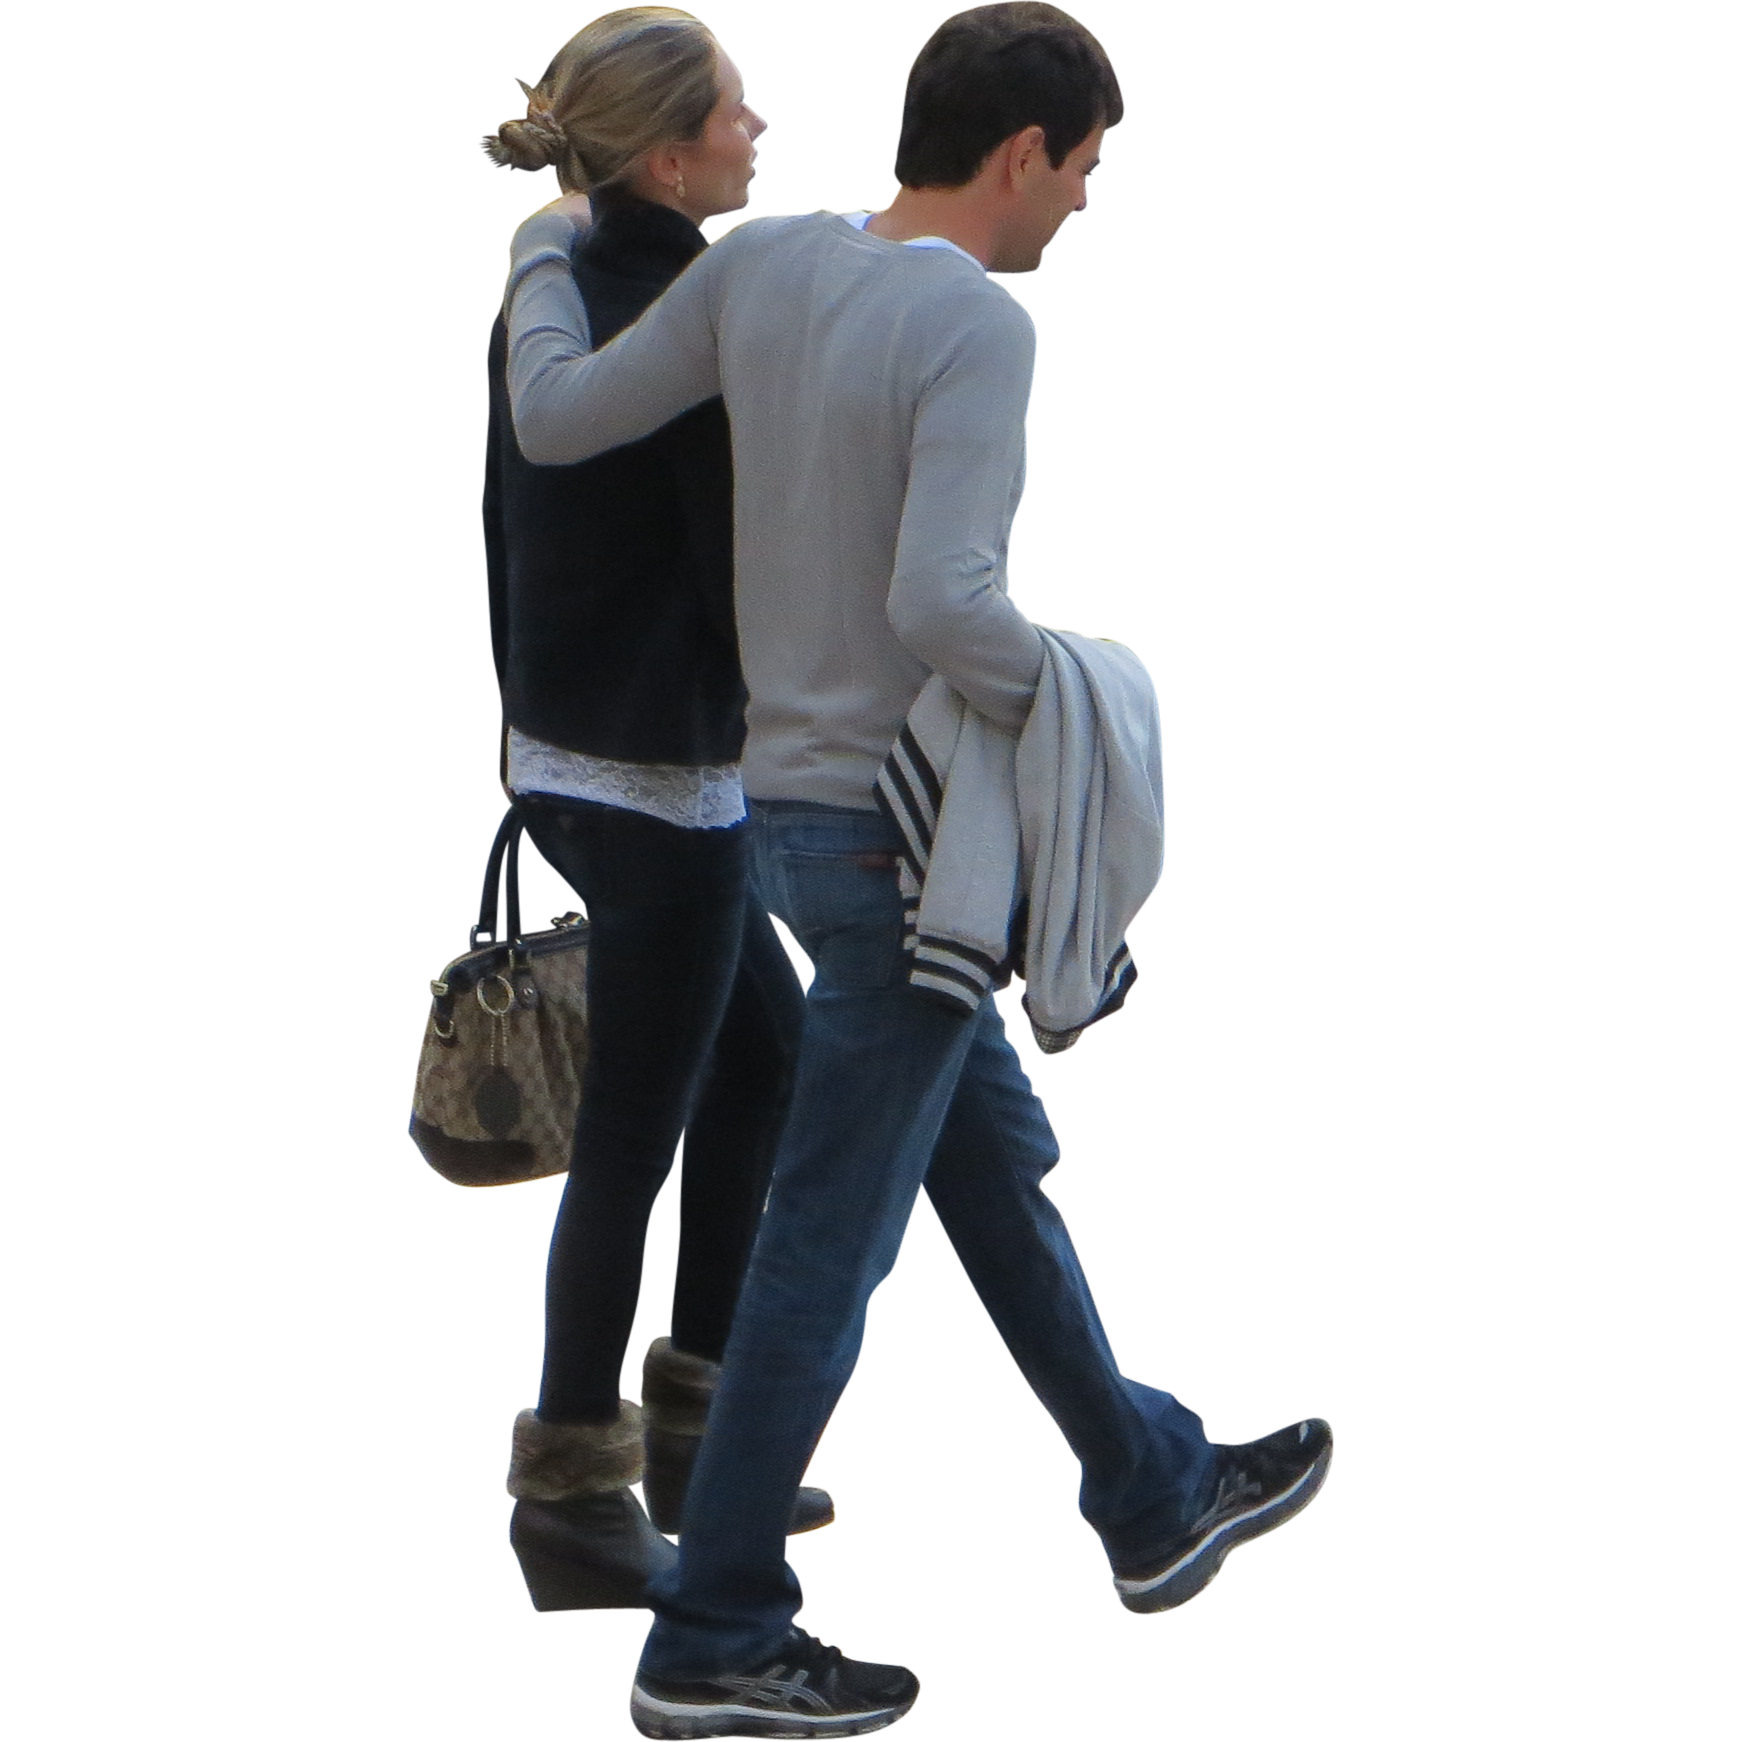 walking people png - Google S